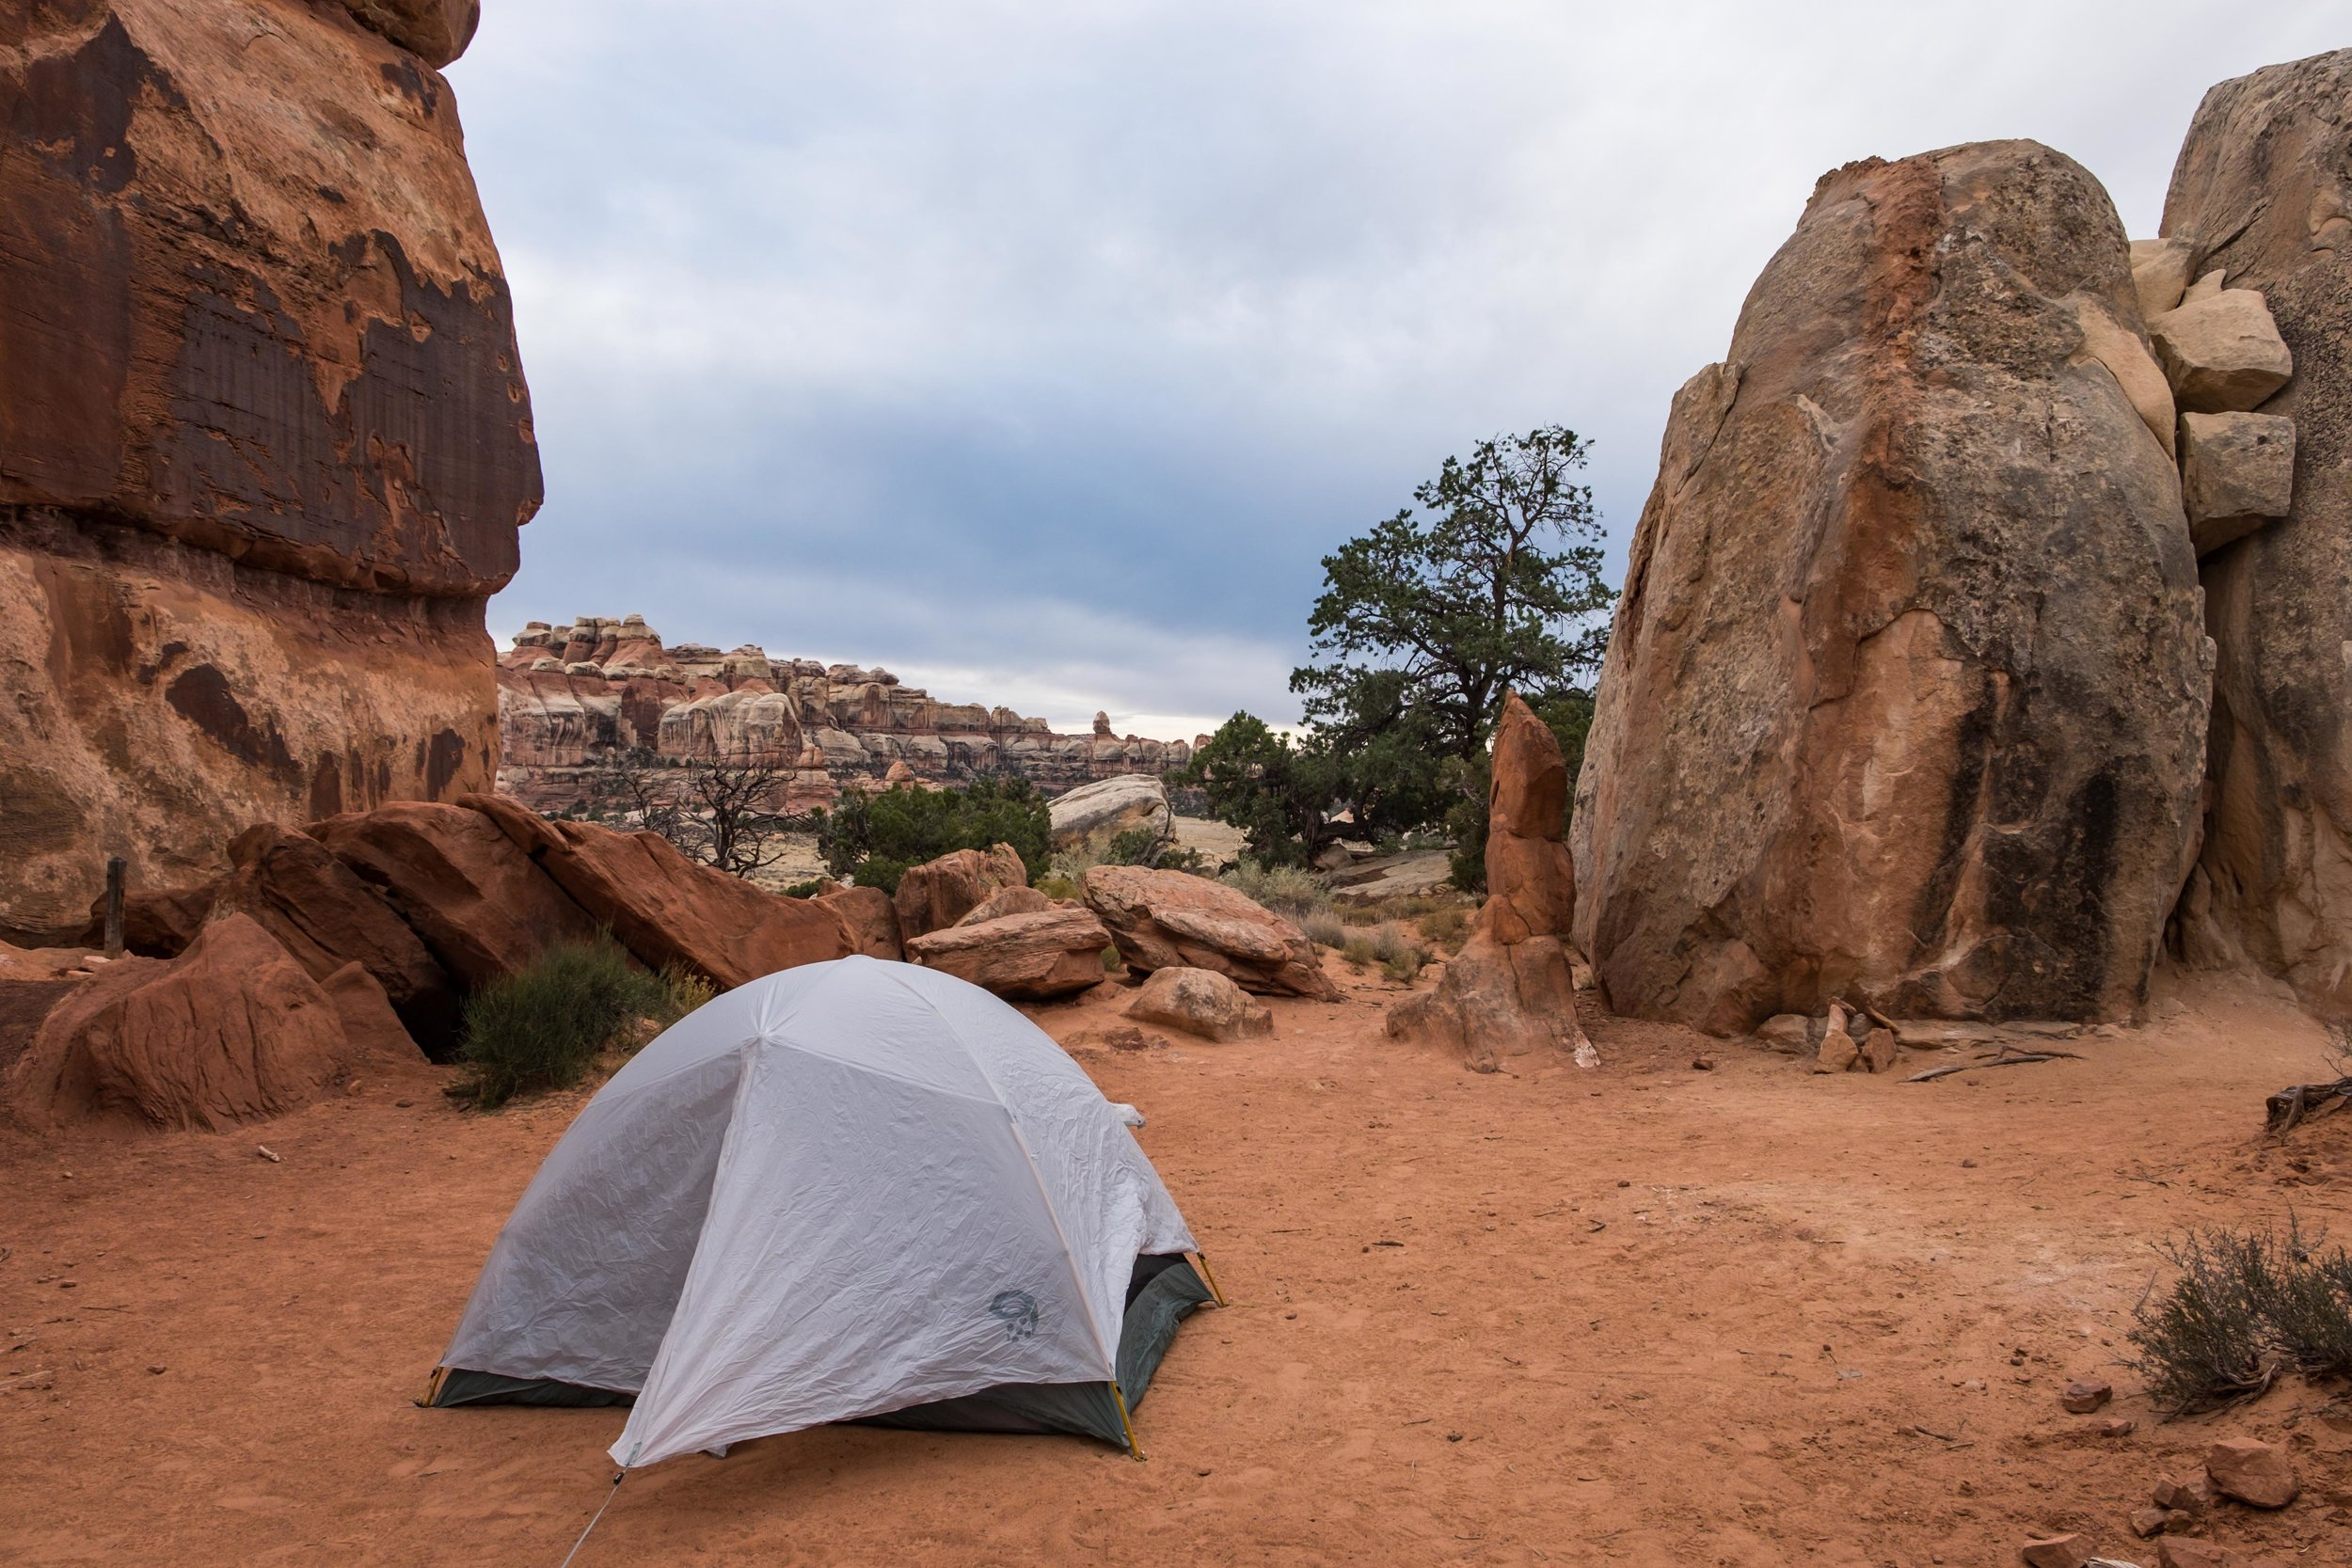 This was one of our favorite campsites of our entire road trip! For those interested, it is CP1 in the Needles District.